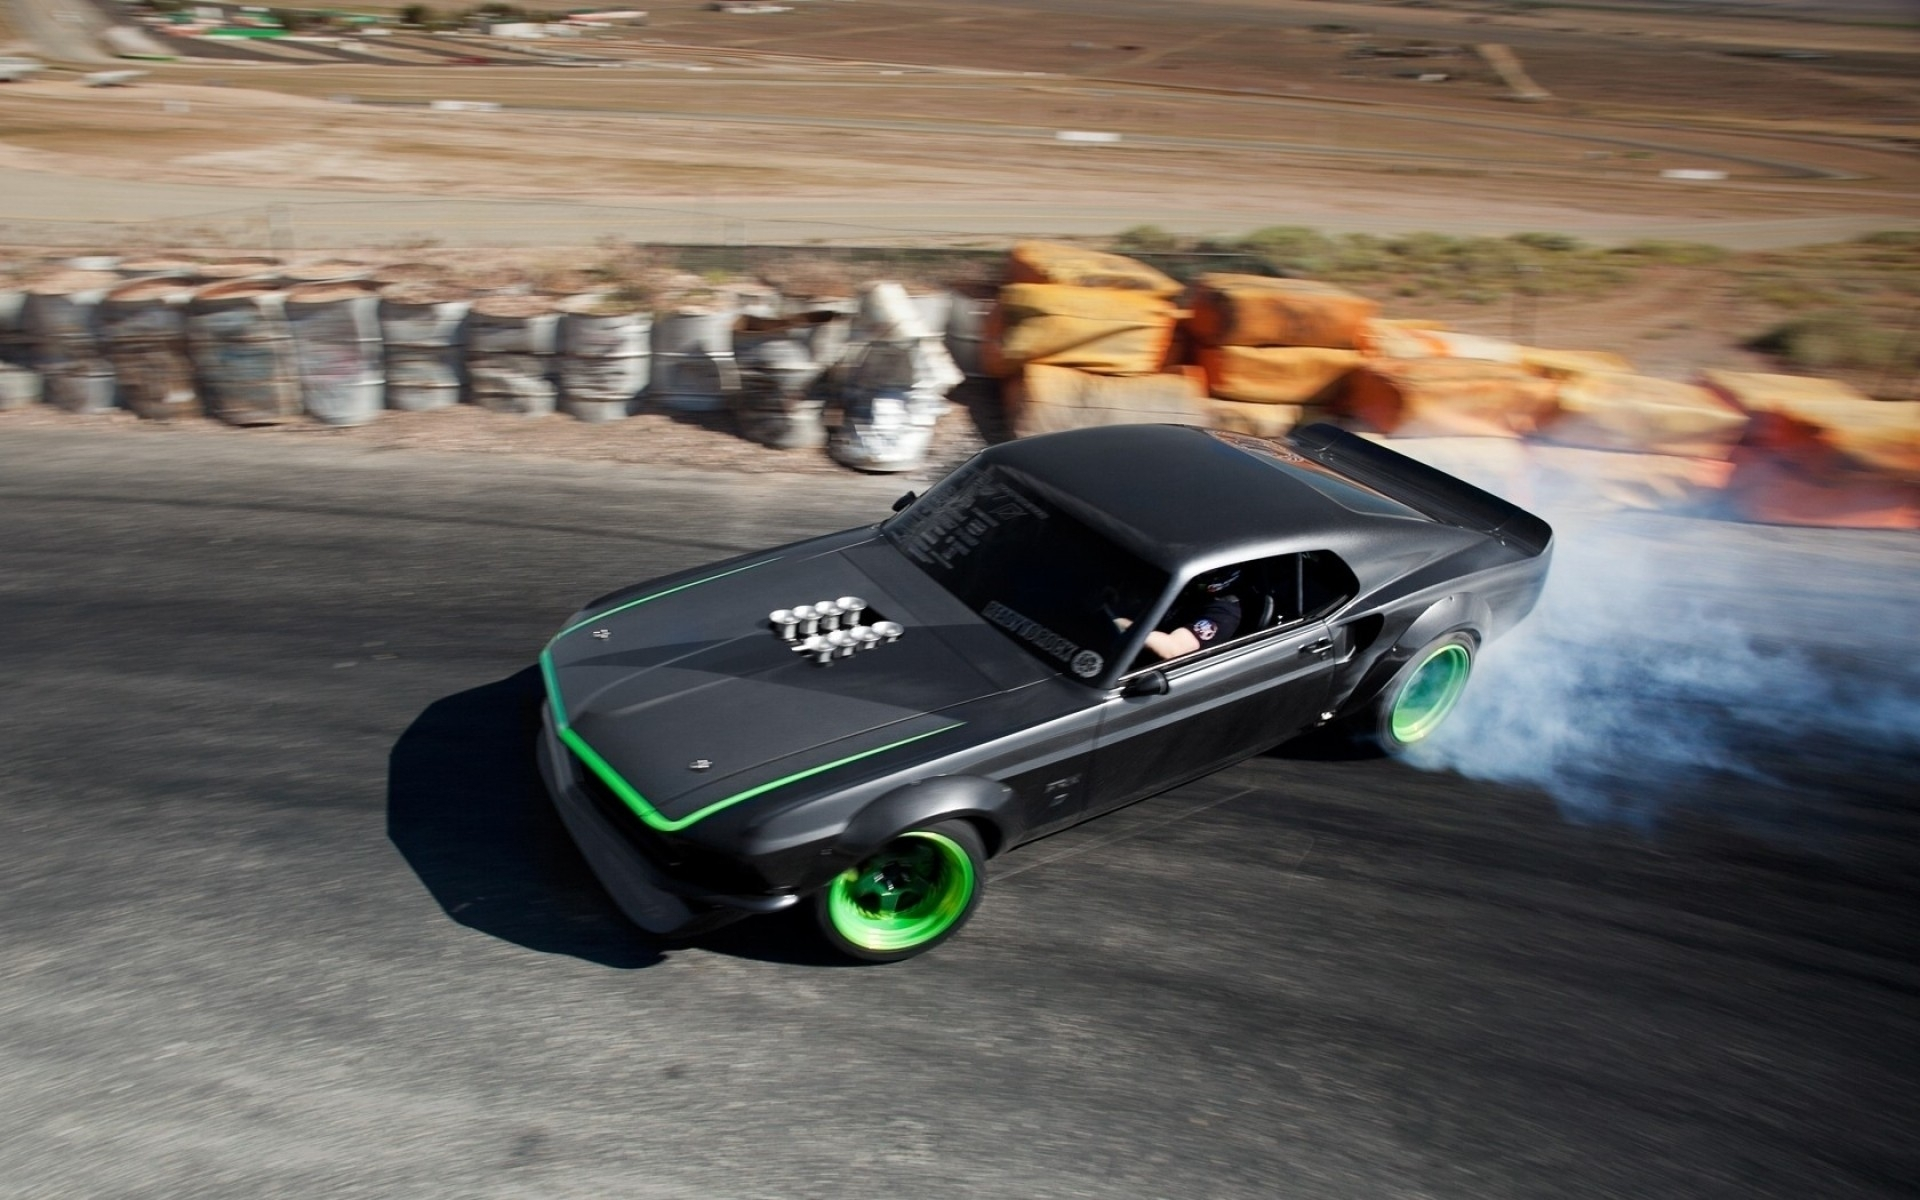 ford mustang hot rod classic muscle cars racing drift tuning race track wallpaper 1920x1200 28124 wallpaperup